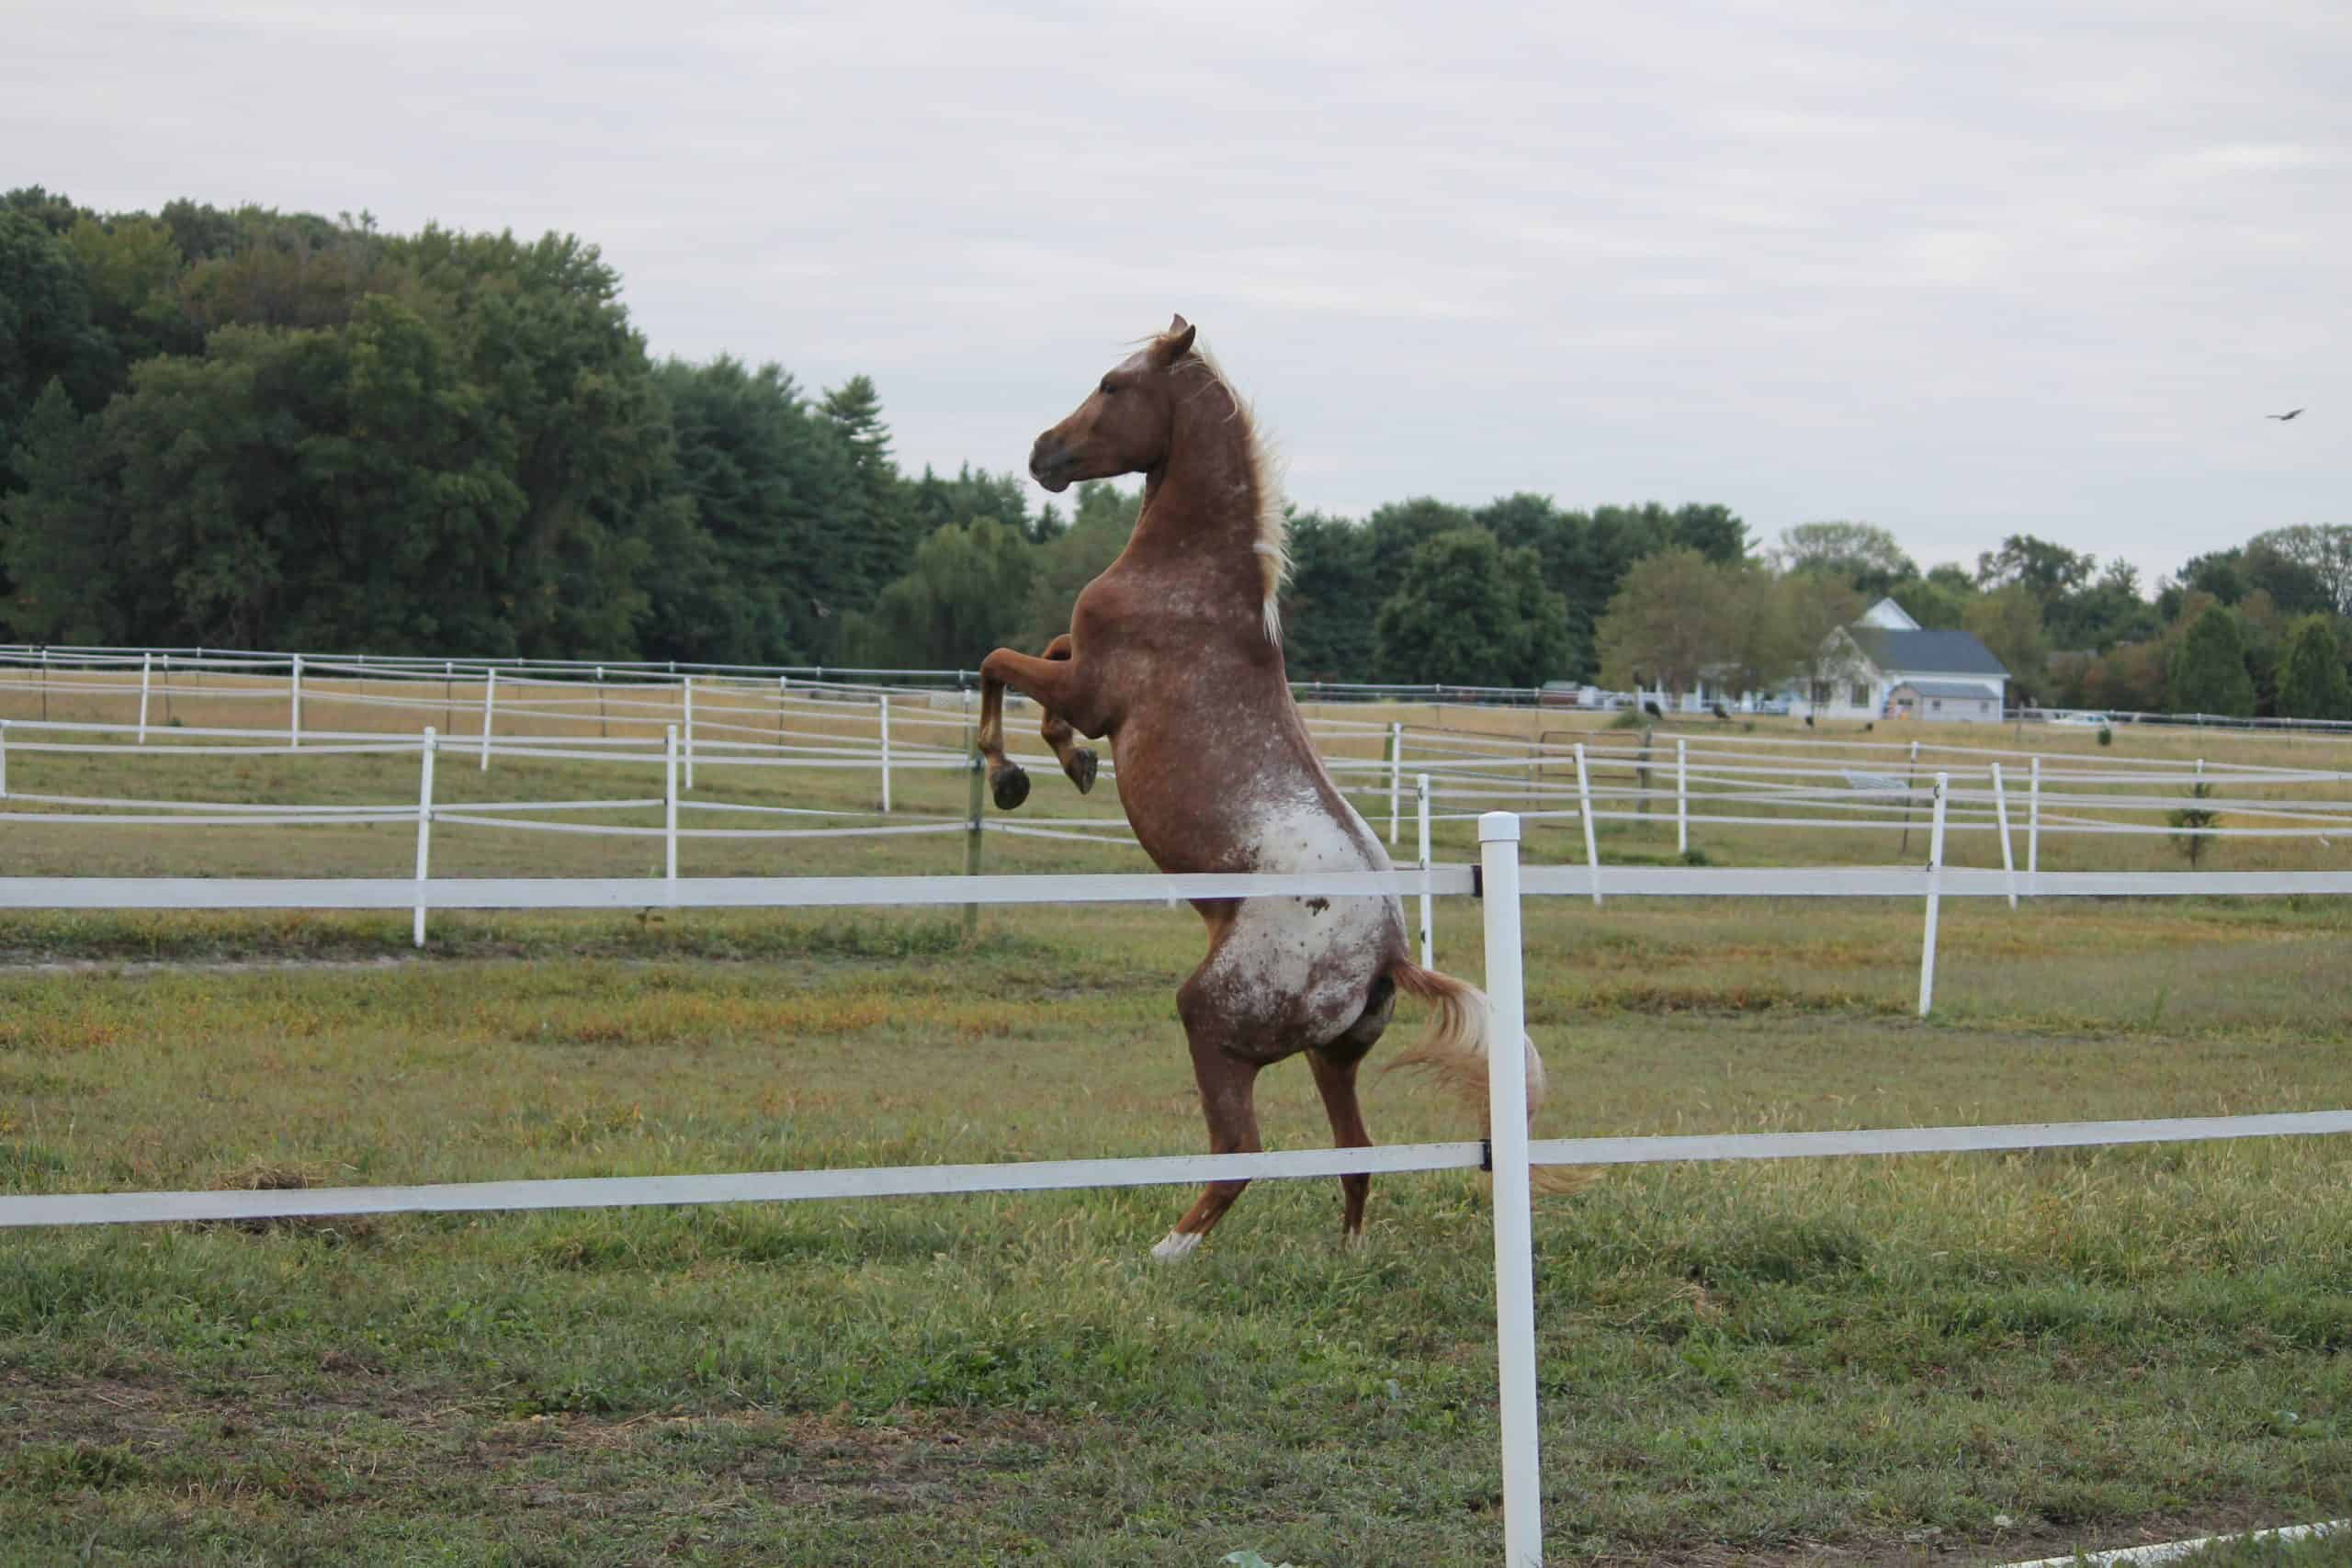 Frisky young Appaloosa horse rears up on hind legs in fenced pasture. White electric fencing separates the pastures.